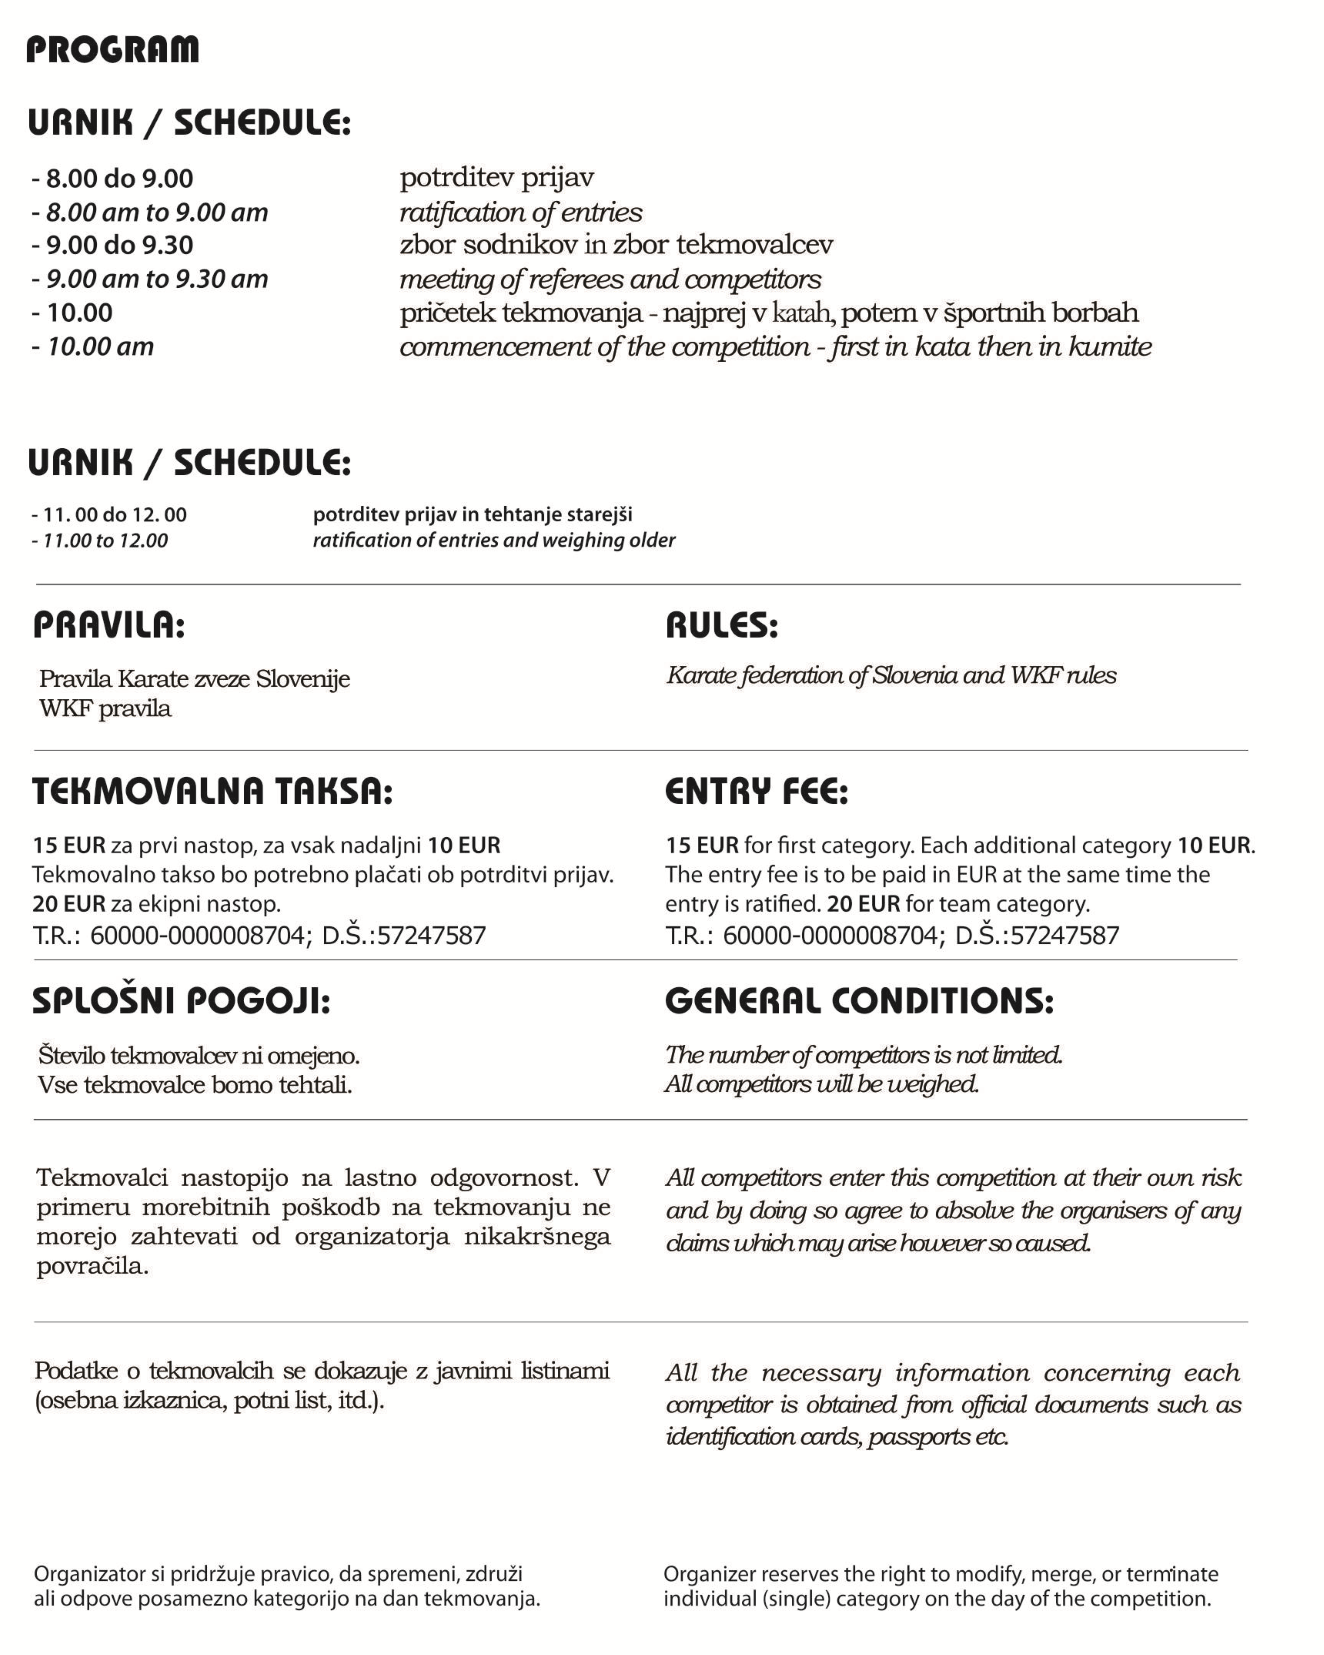 kranj-open-2017-program